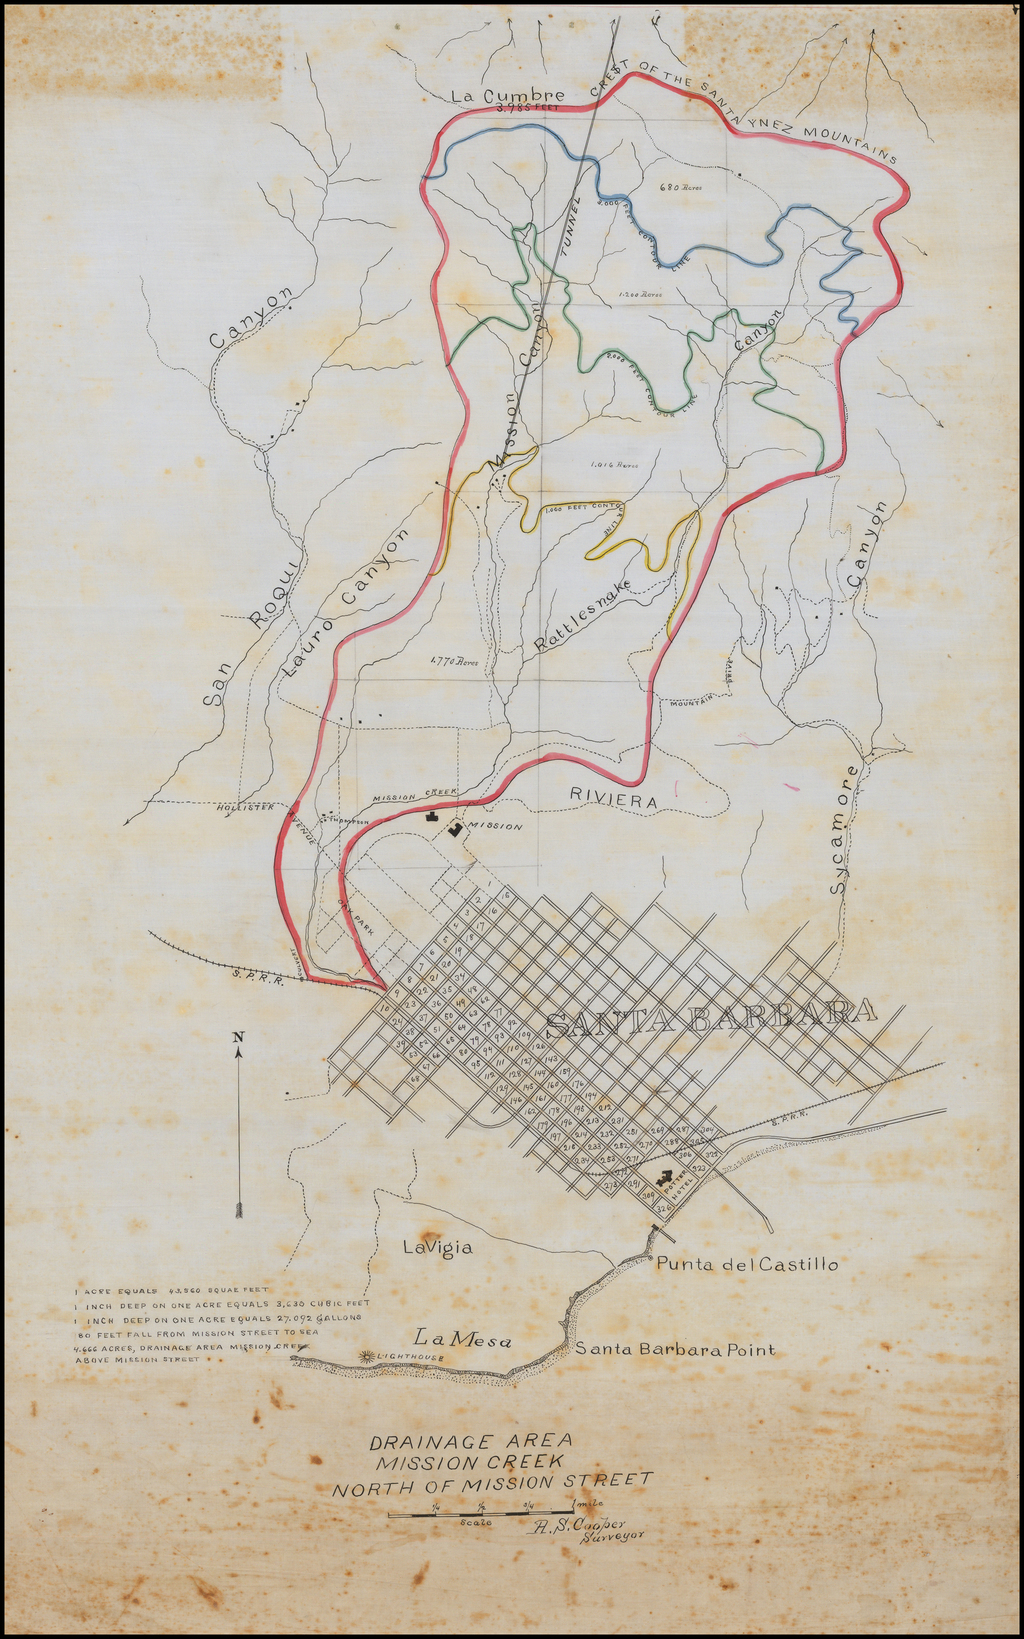 [Santa Barbara Manuscript Map]  Drainage Area Mission Creek North of Mission Street By A. S. Cooper